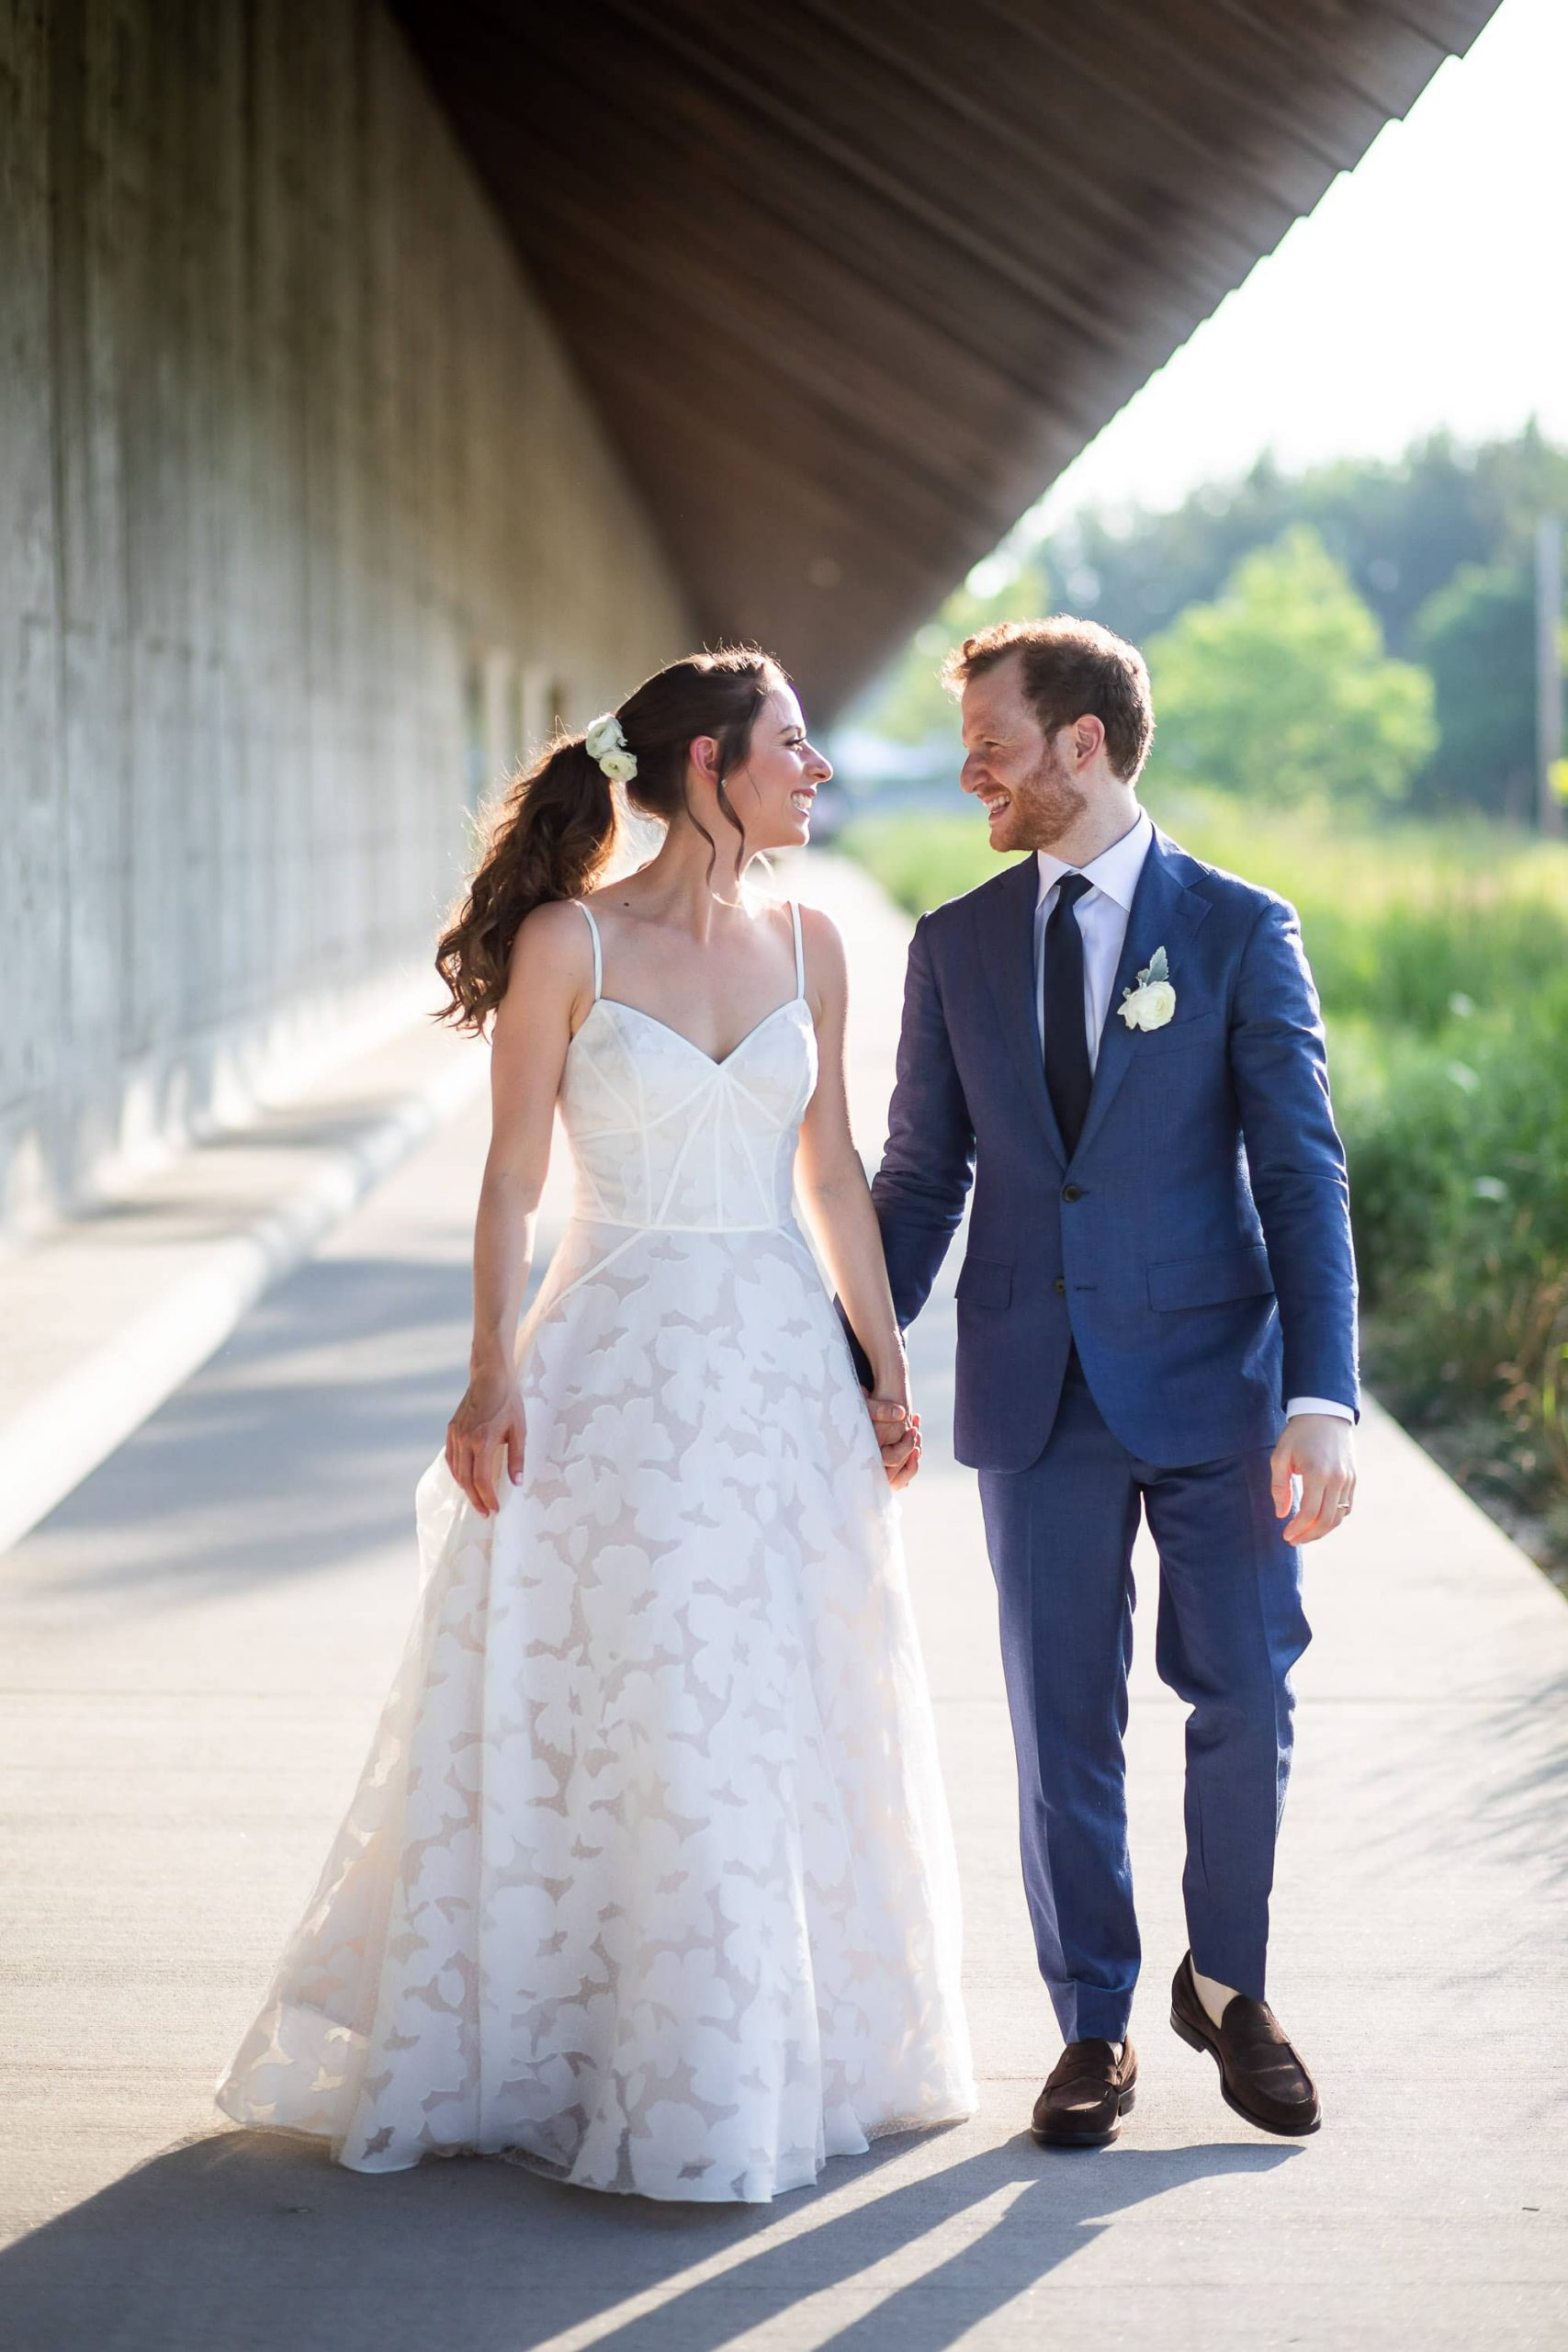 Bride and groom at this Hamptons wedding weekend held at The Parrish Museum | Photo by Roey Yohai Studio